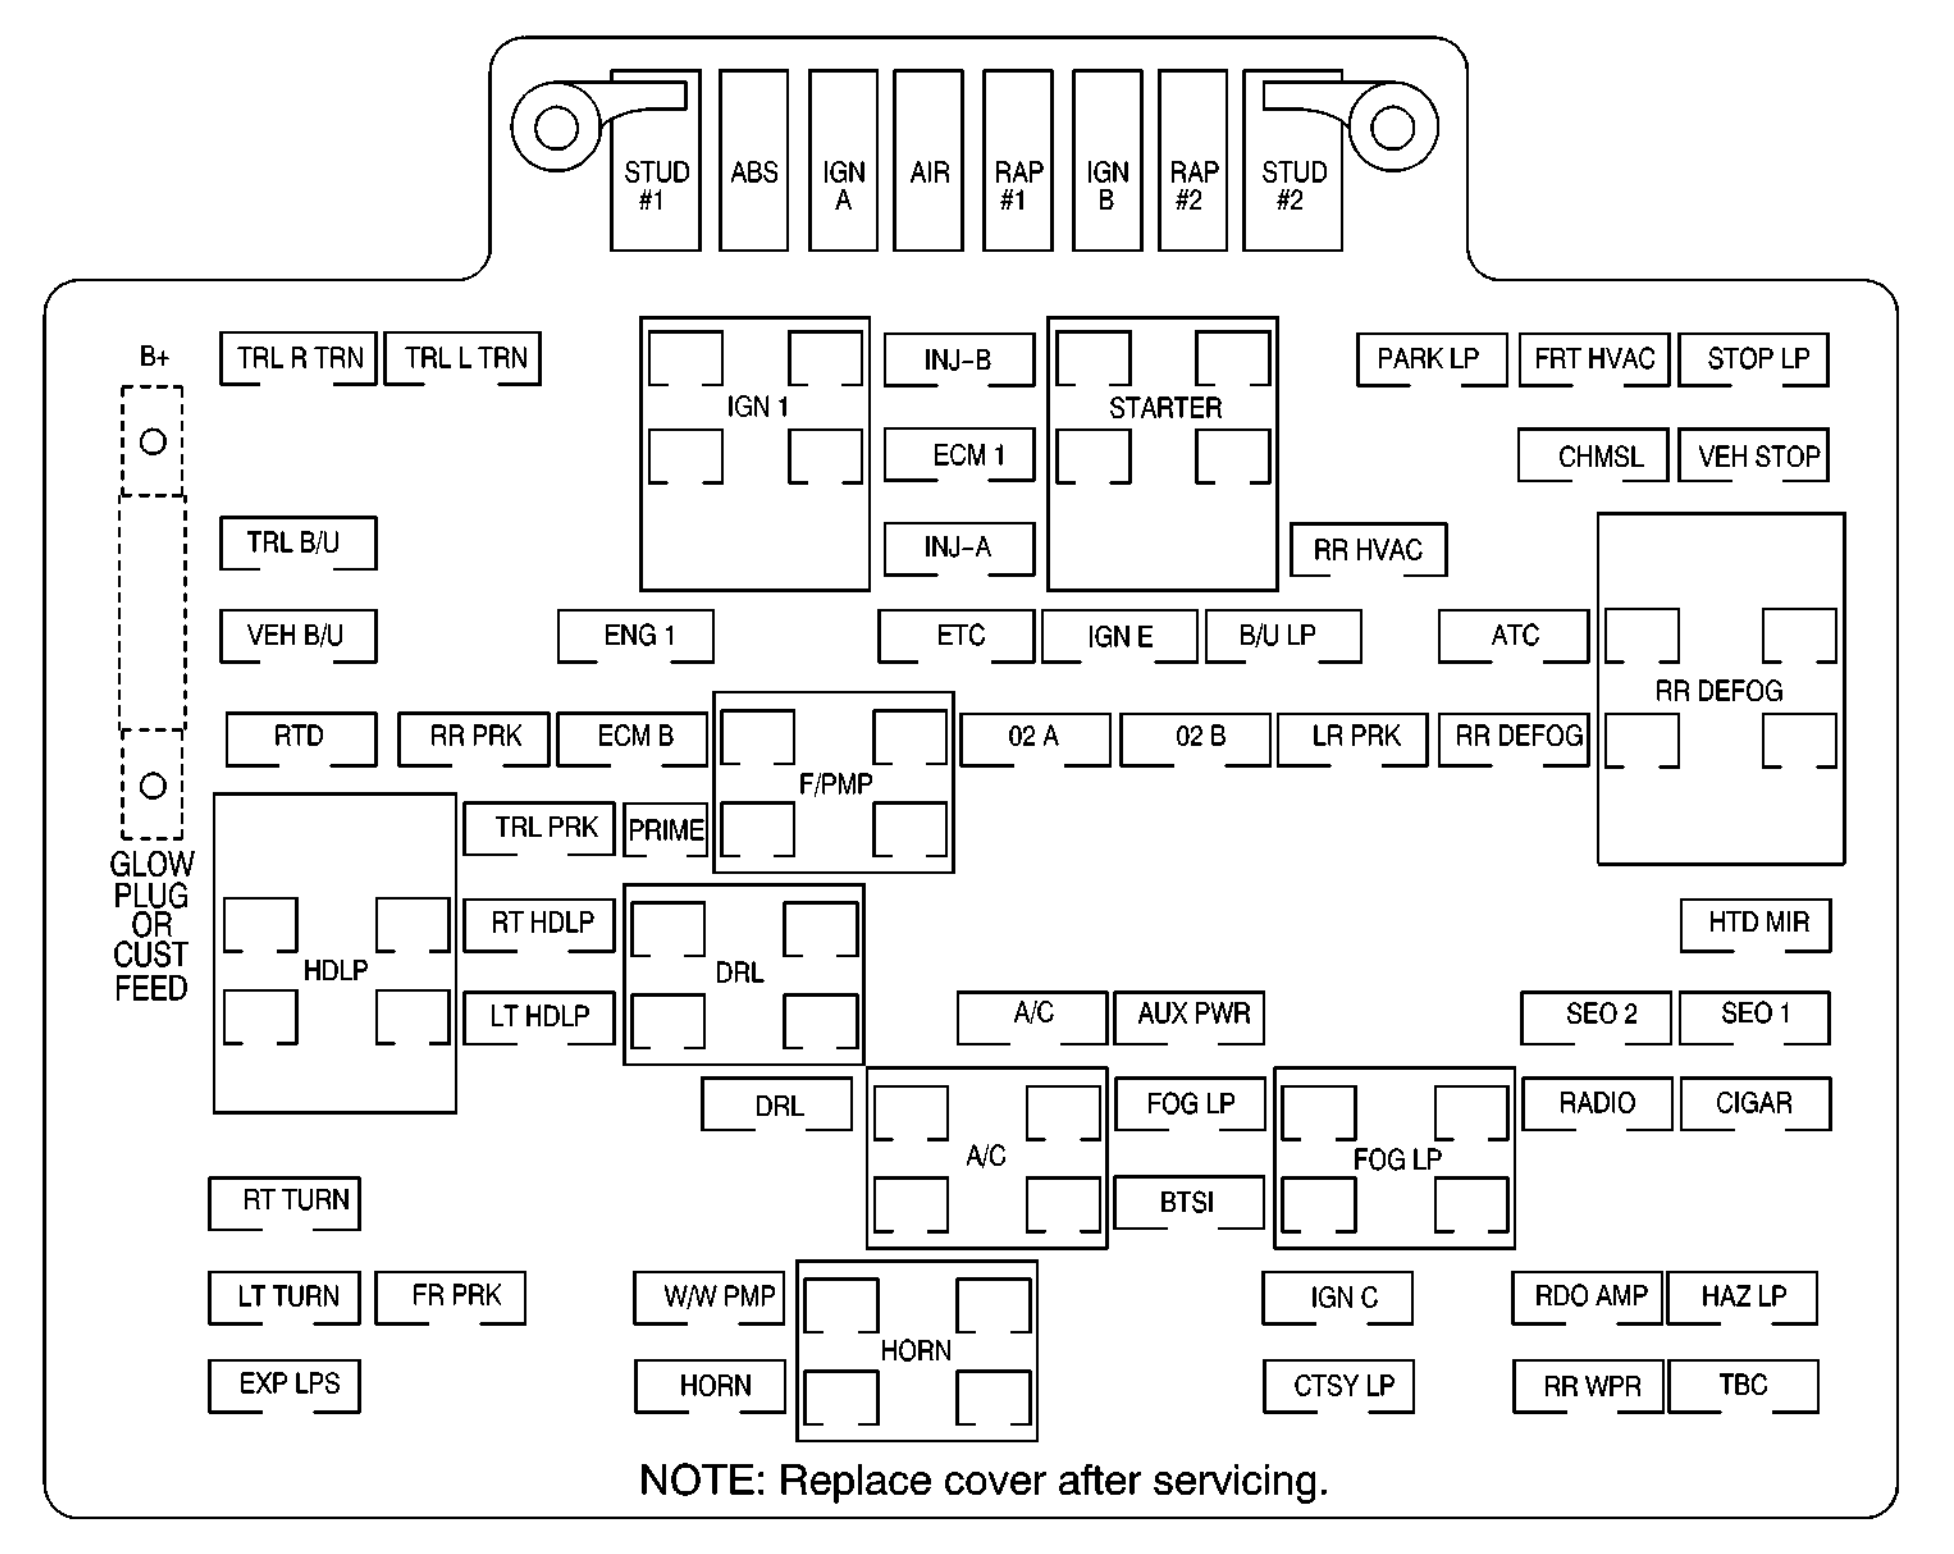 2008 chevrolet suburban trailer wiring diagram wiring diagram data 2006 Silverado Fuse Diagram 2007 suburban fuse box diagram wiring diagram data schema 2008 f250 trailer wiring diagram 2008 chevrolet suburban trailer wiring diagram